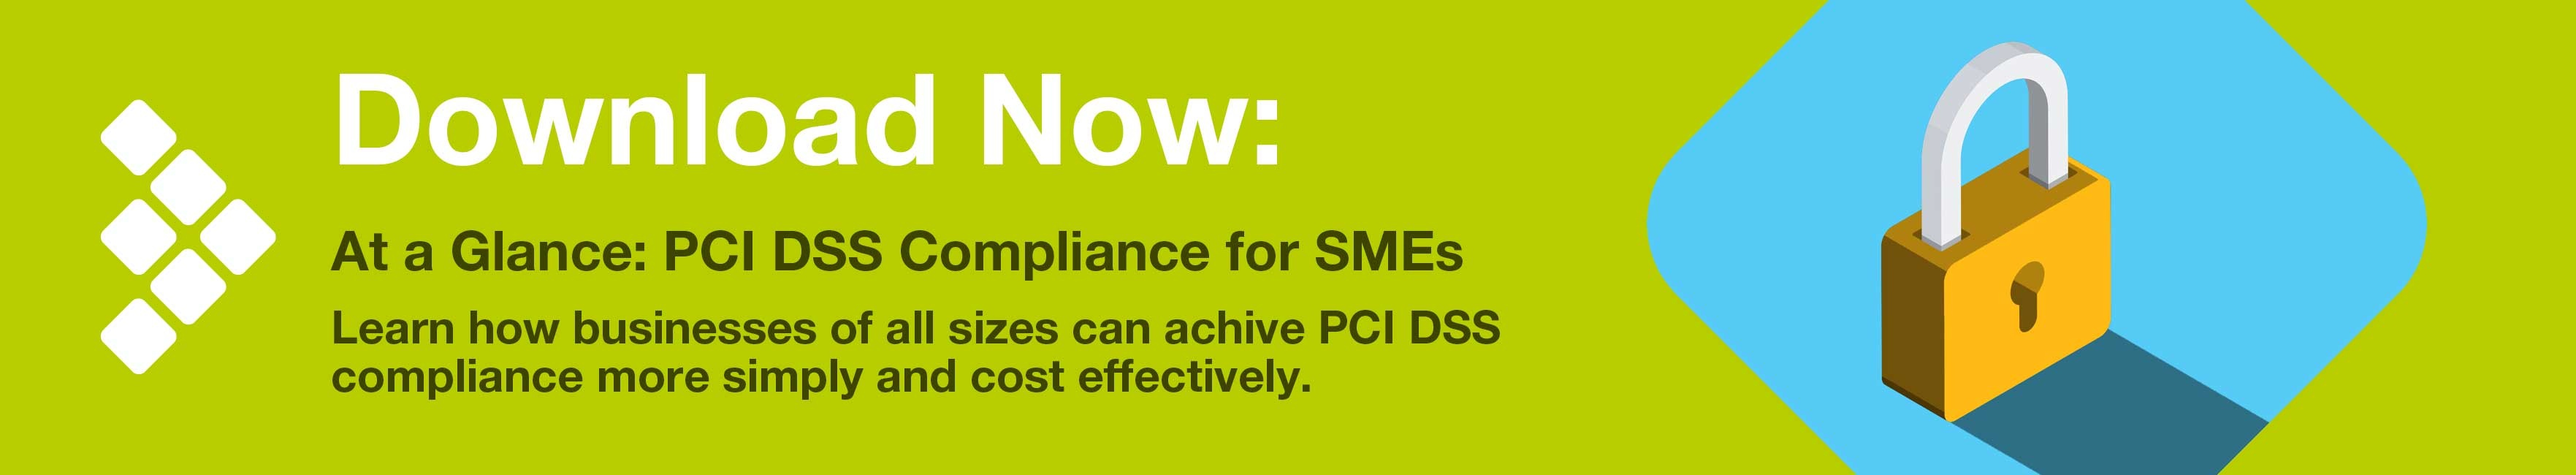 Download Now - At a Glance: PCI DSS Compliance for SMEs